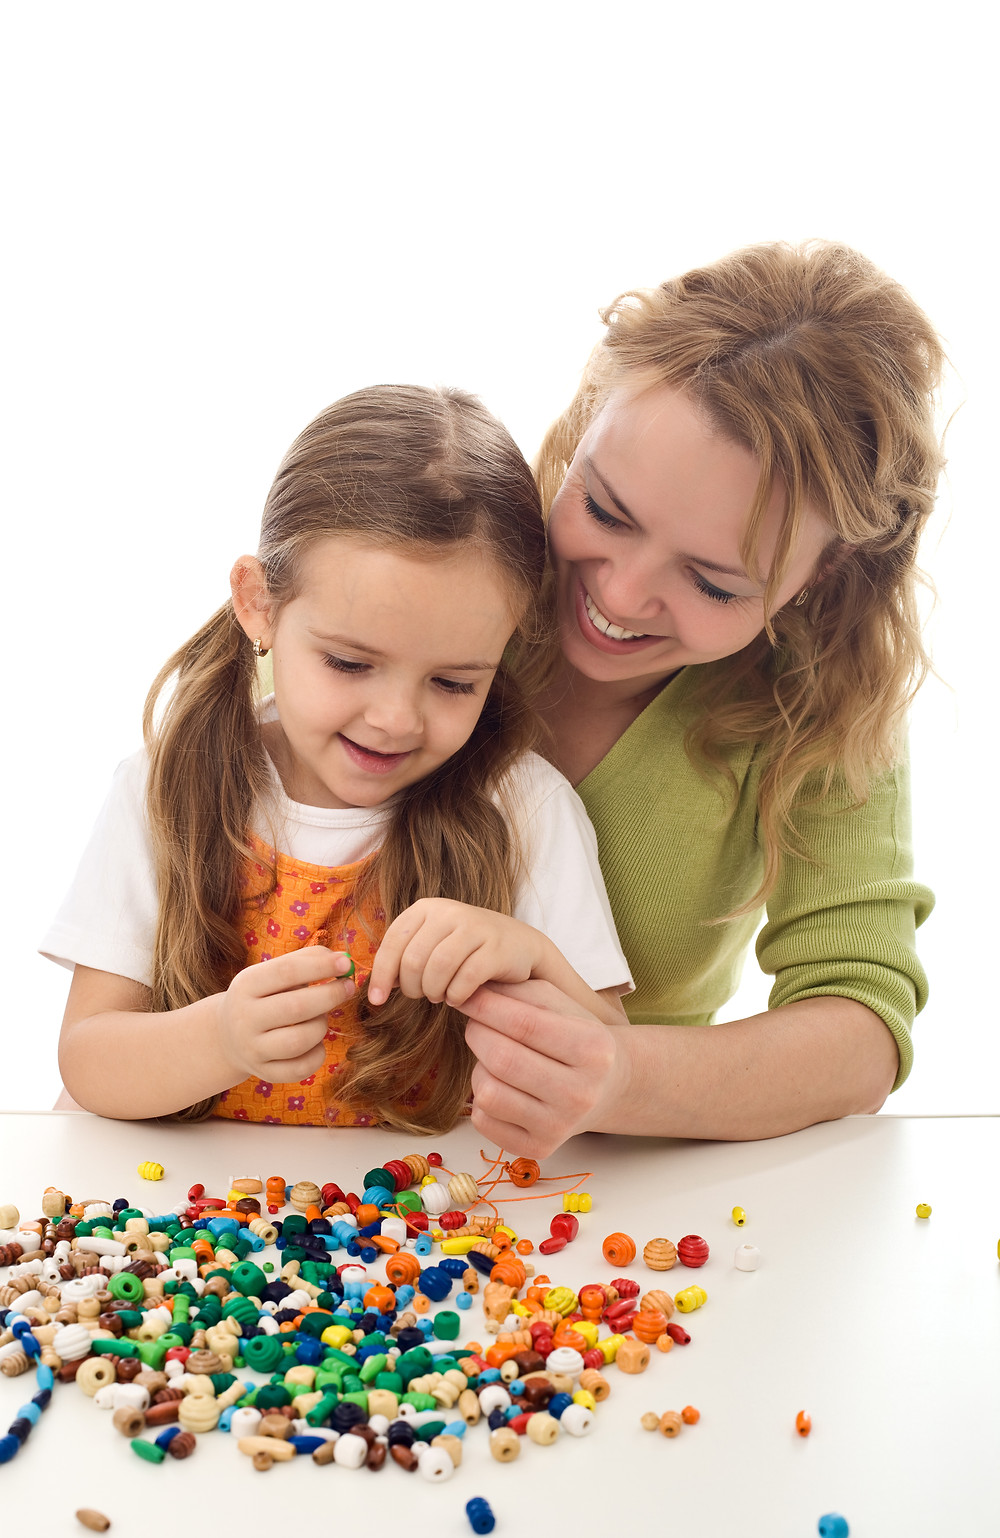 Girl Lacing Beads with Mother Helping